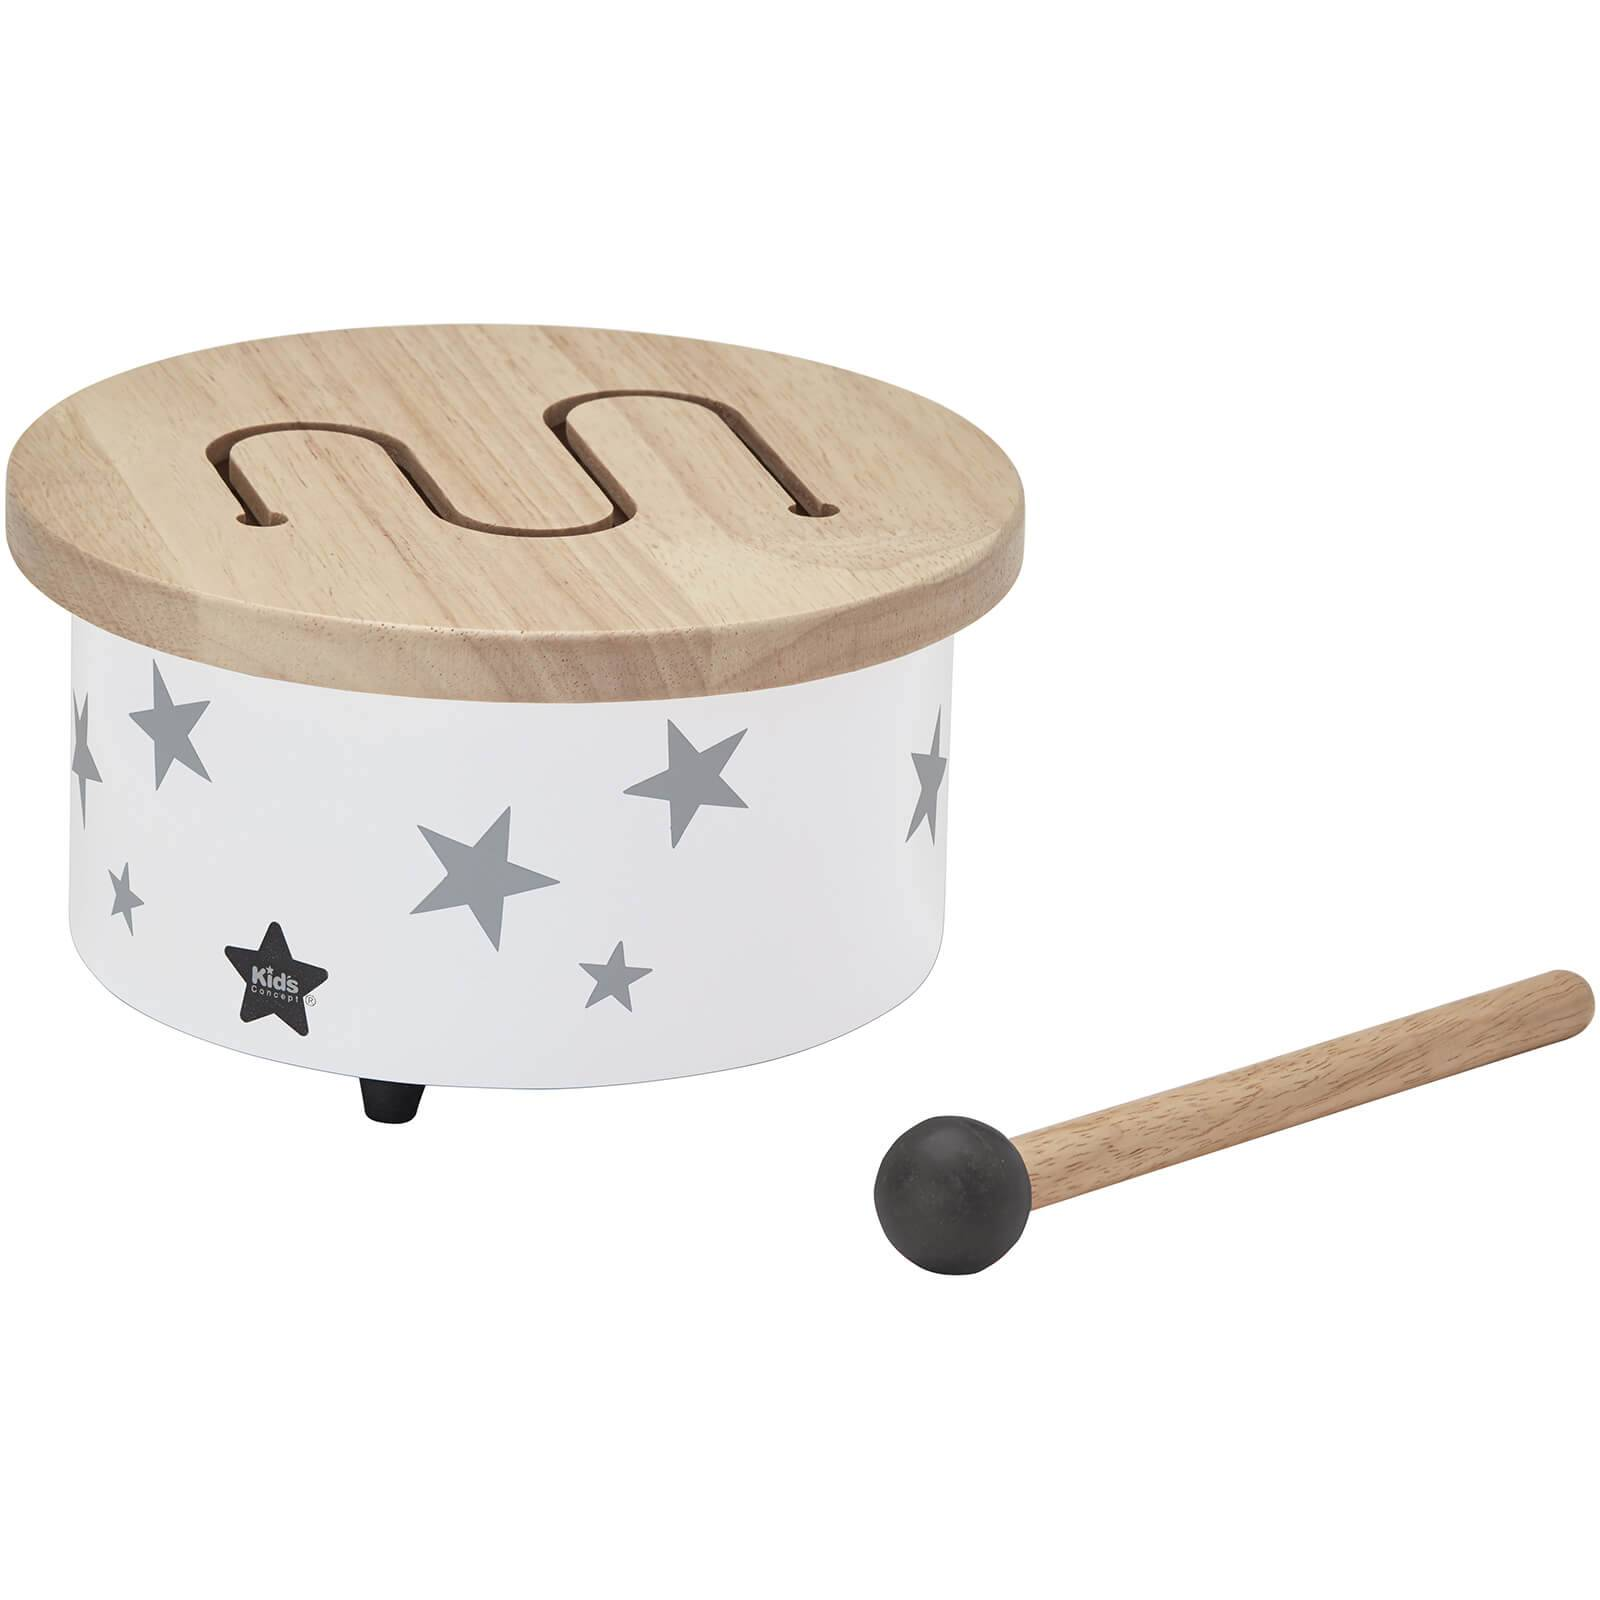 Kids Concept Mini Drum - White